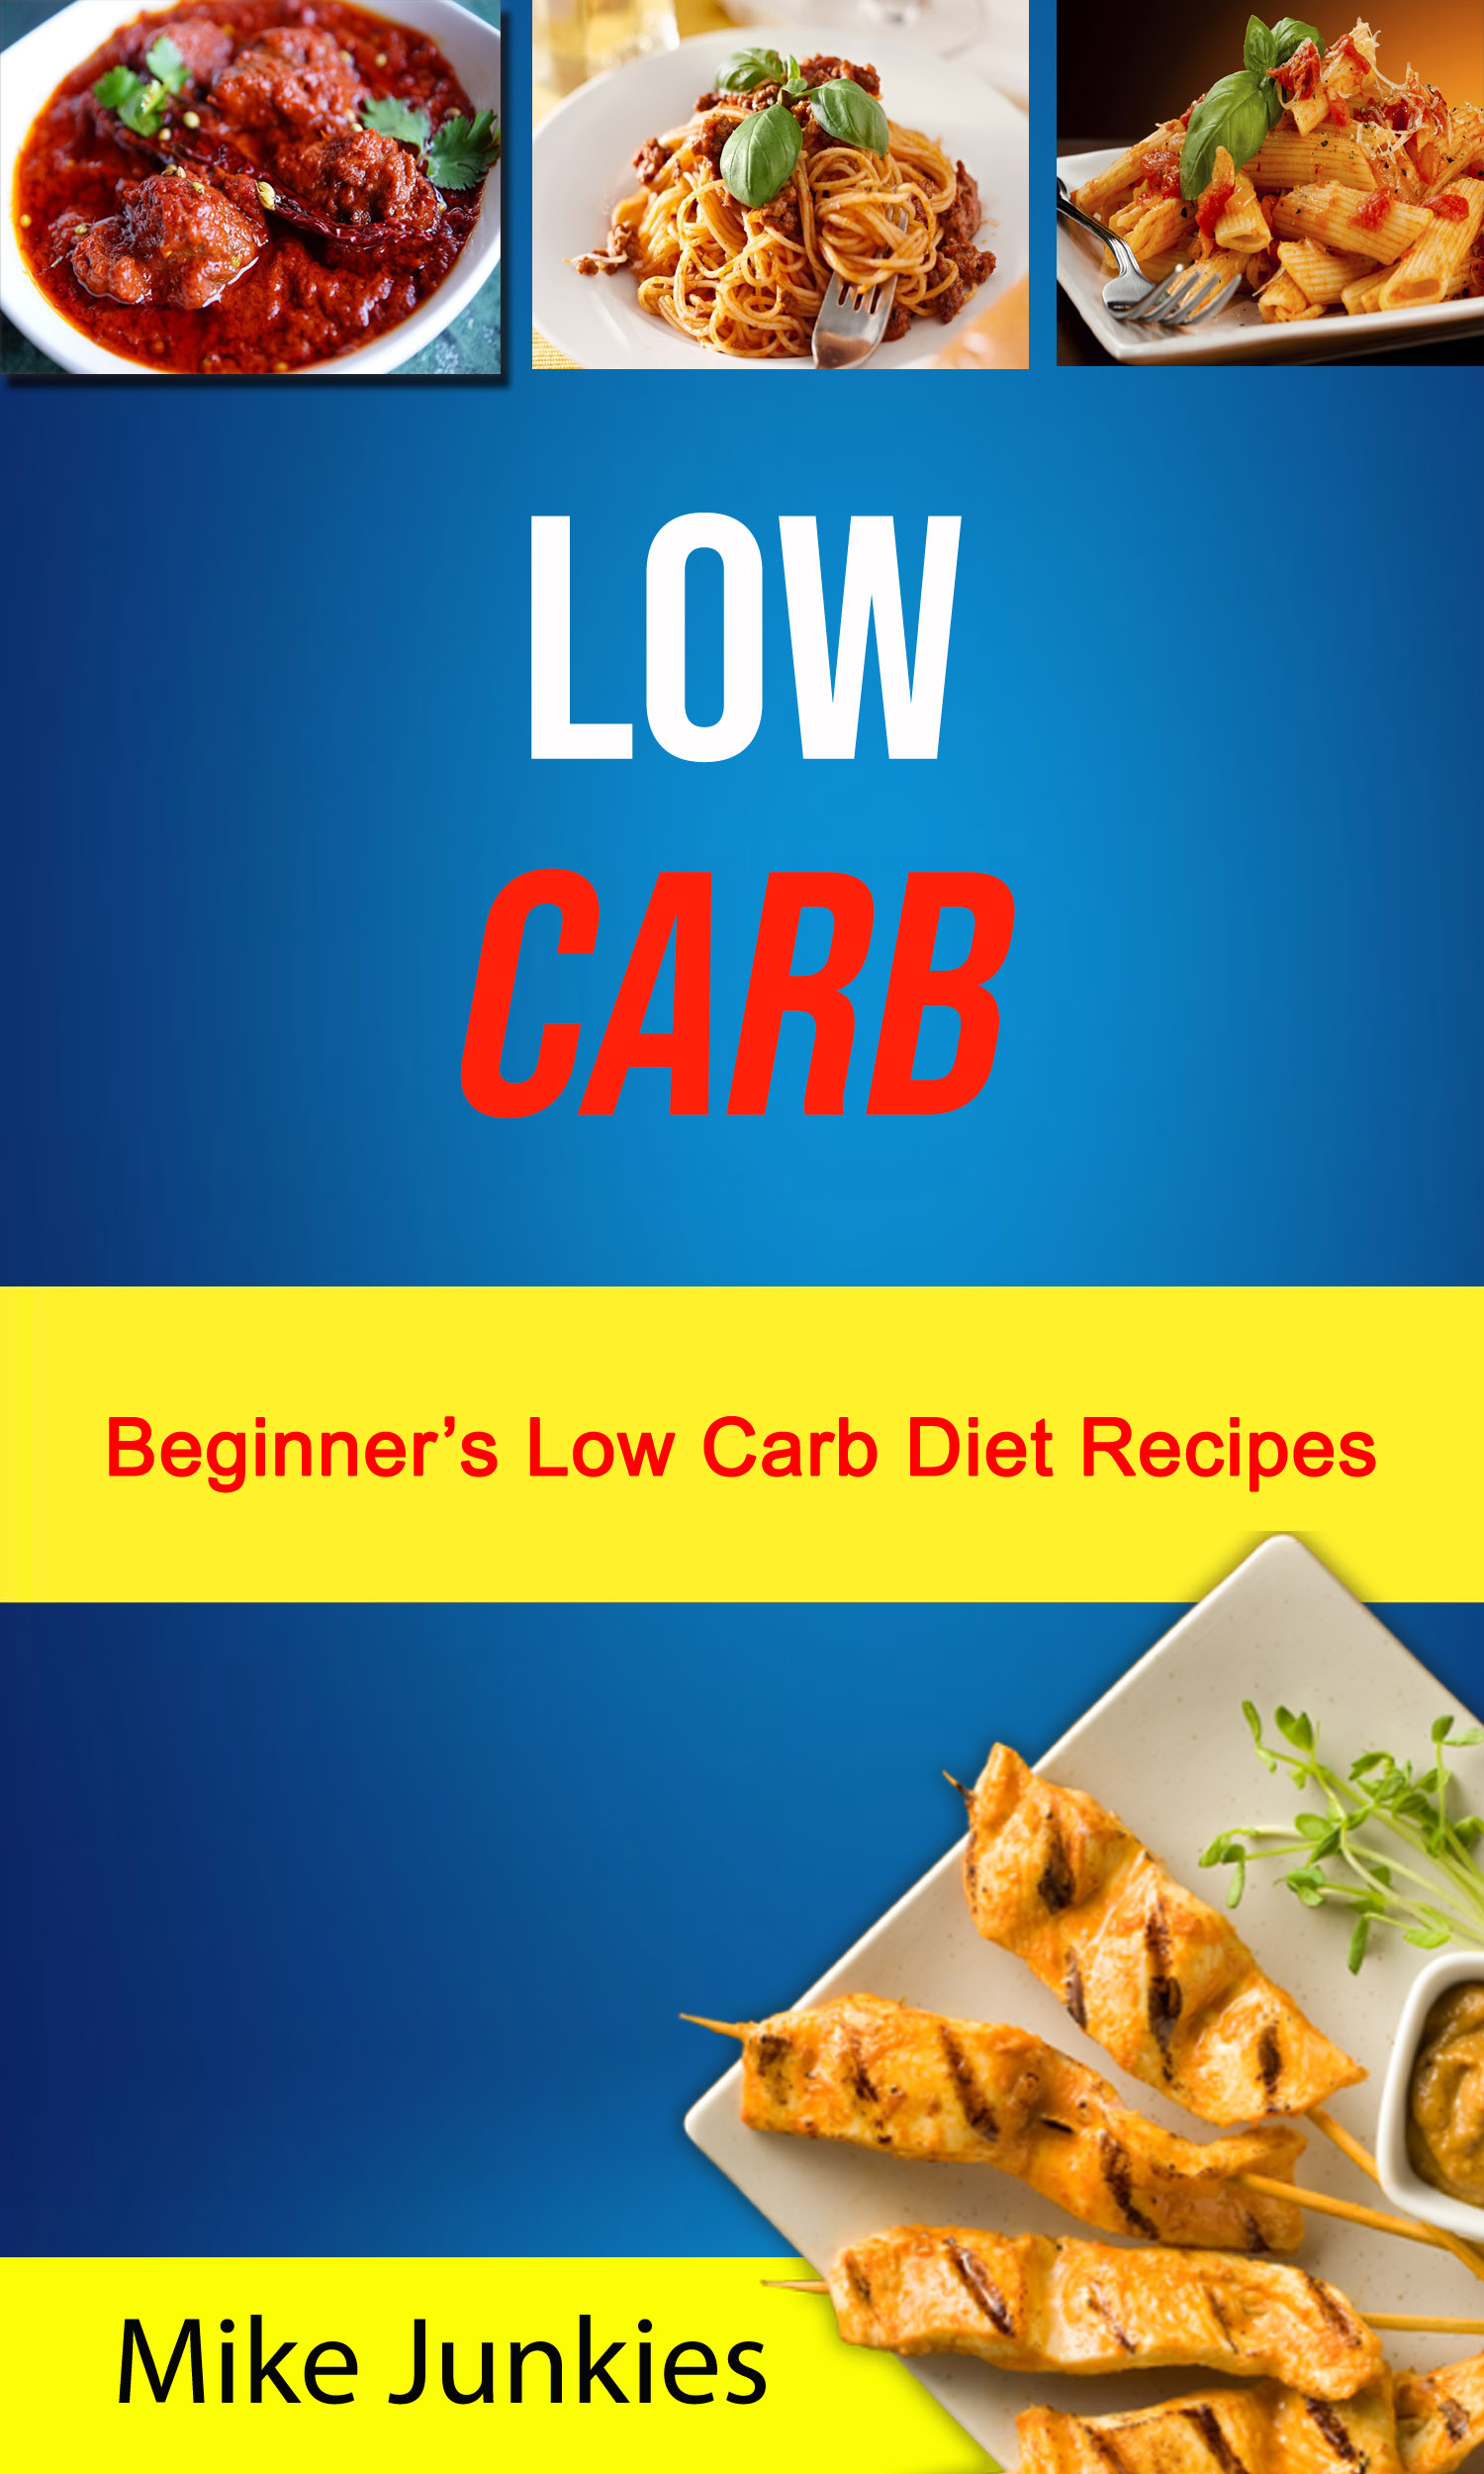 Low carb: beginner's low carb diet recipes